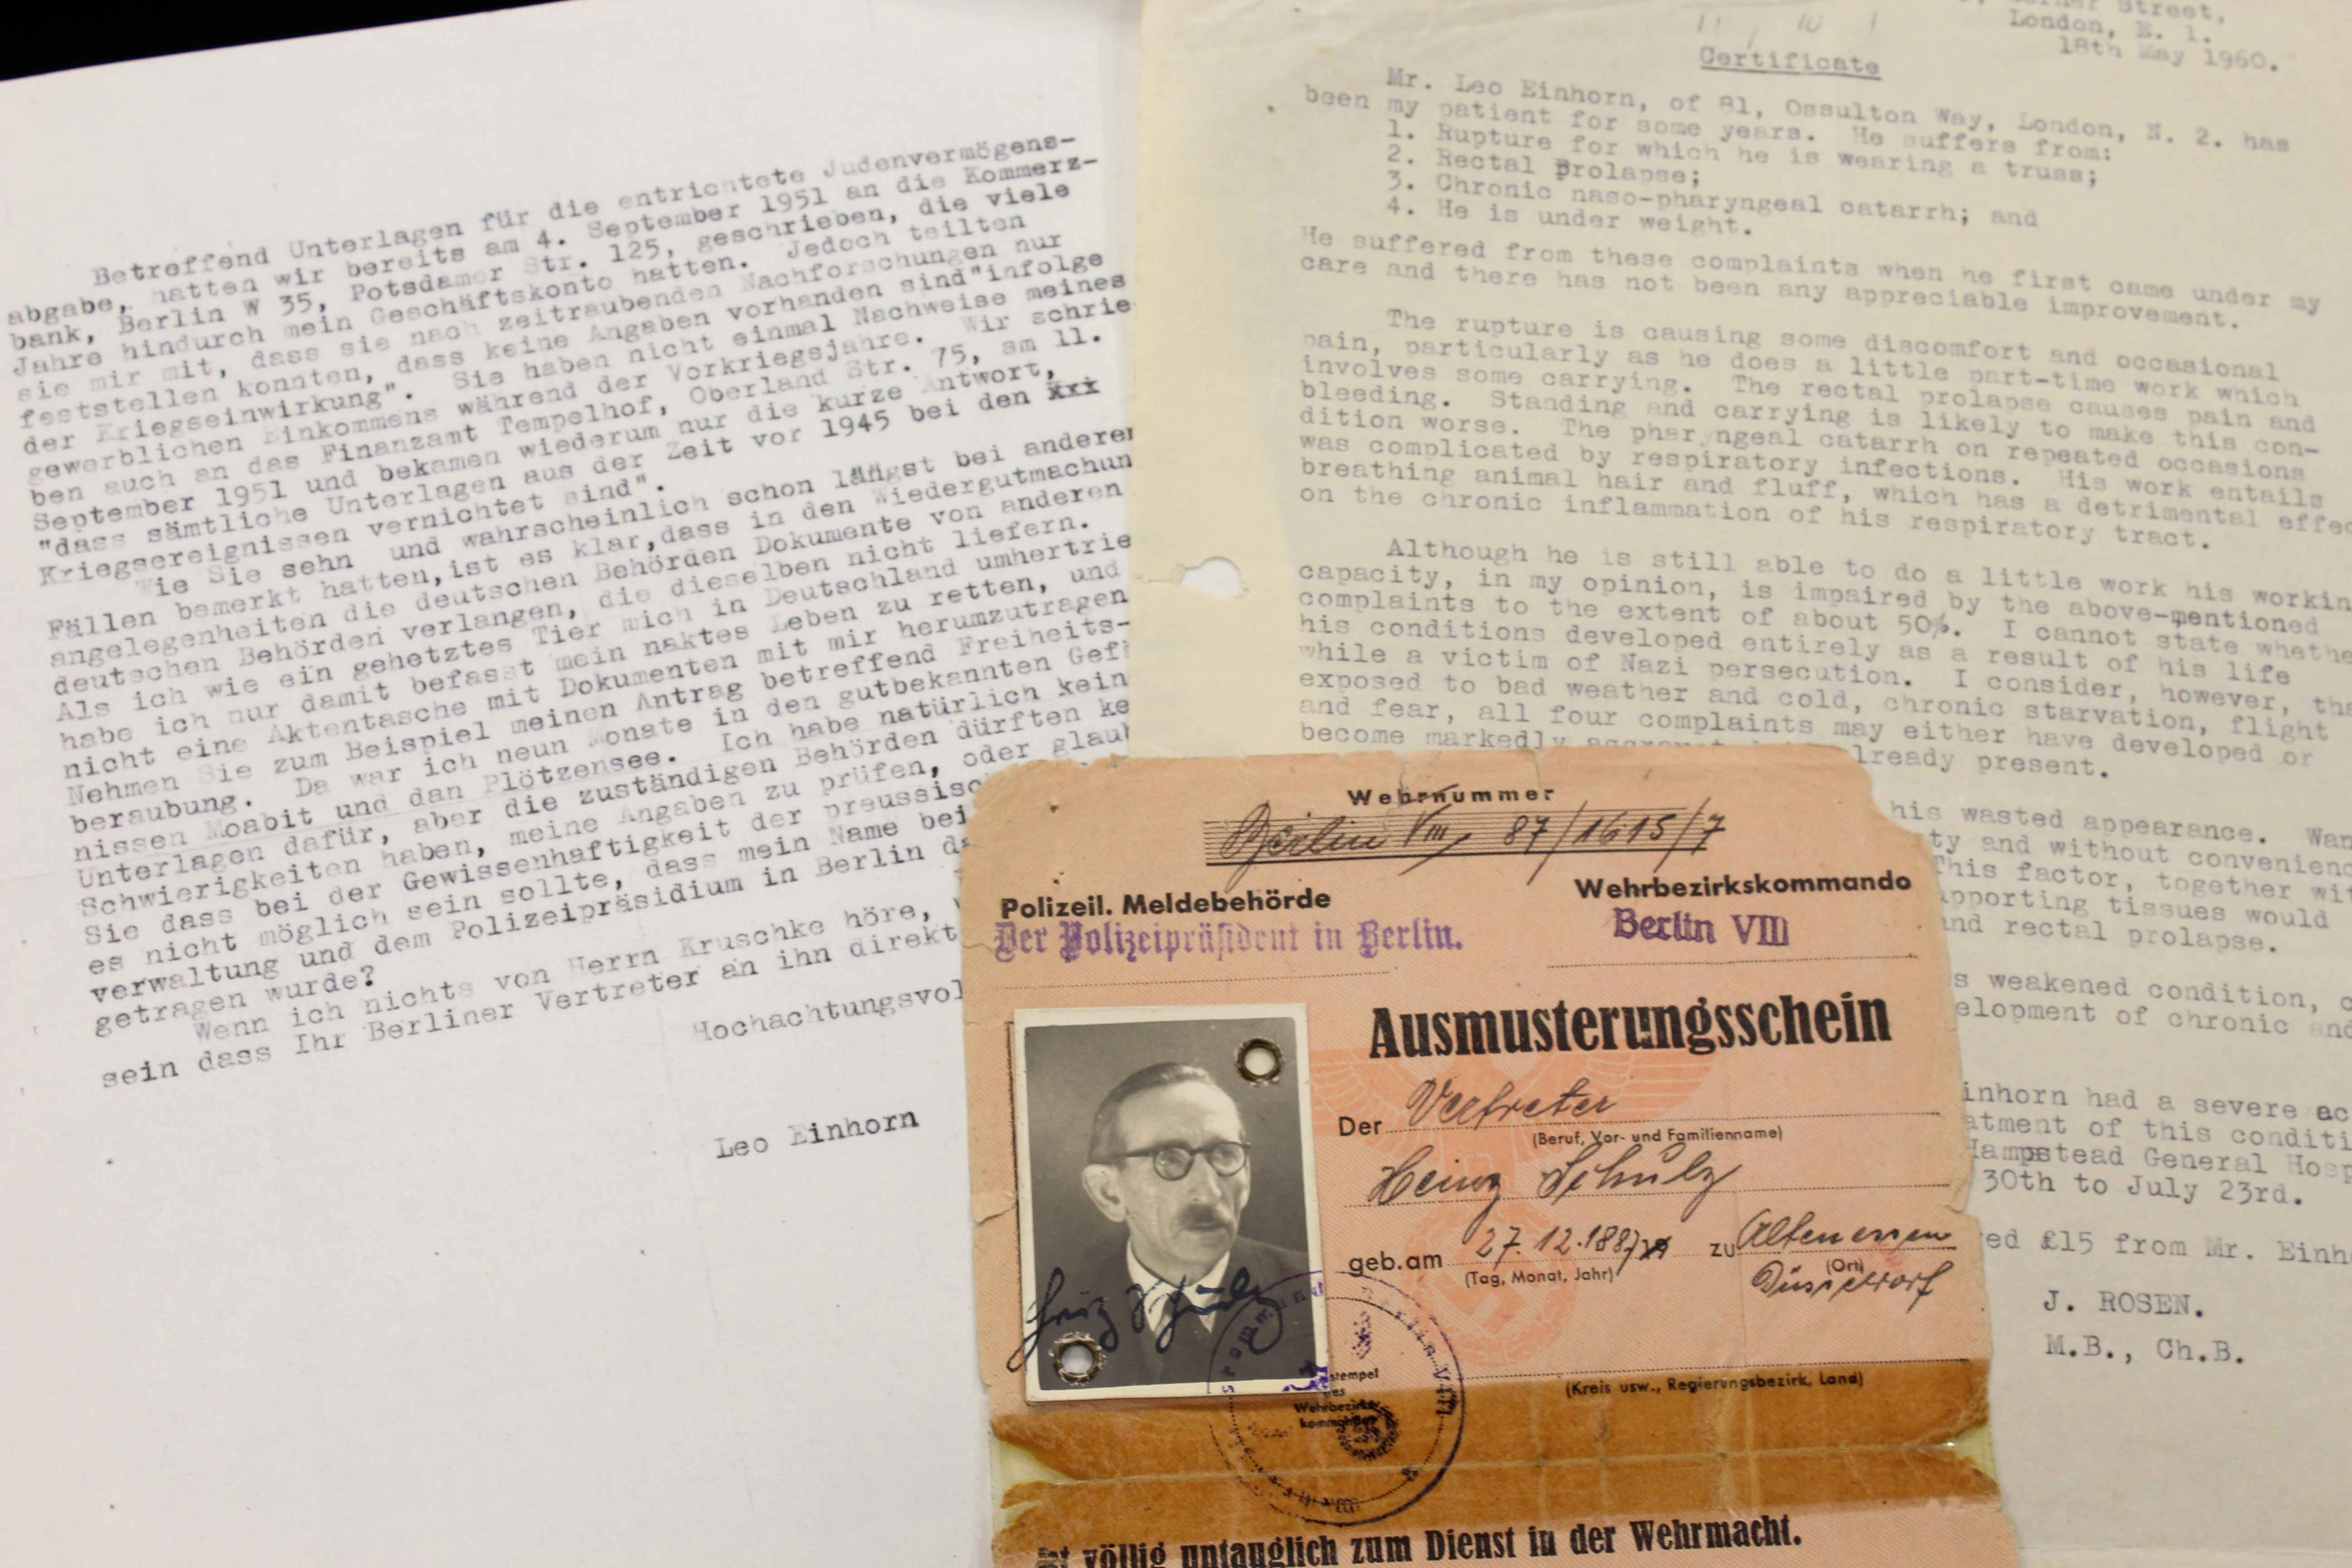 Two typewritten letters and a formal document with black and white passport photo